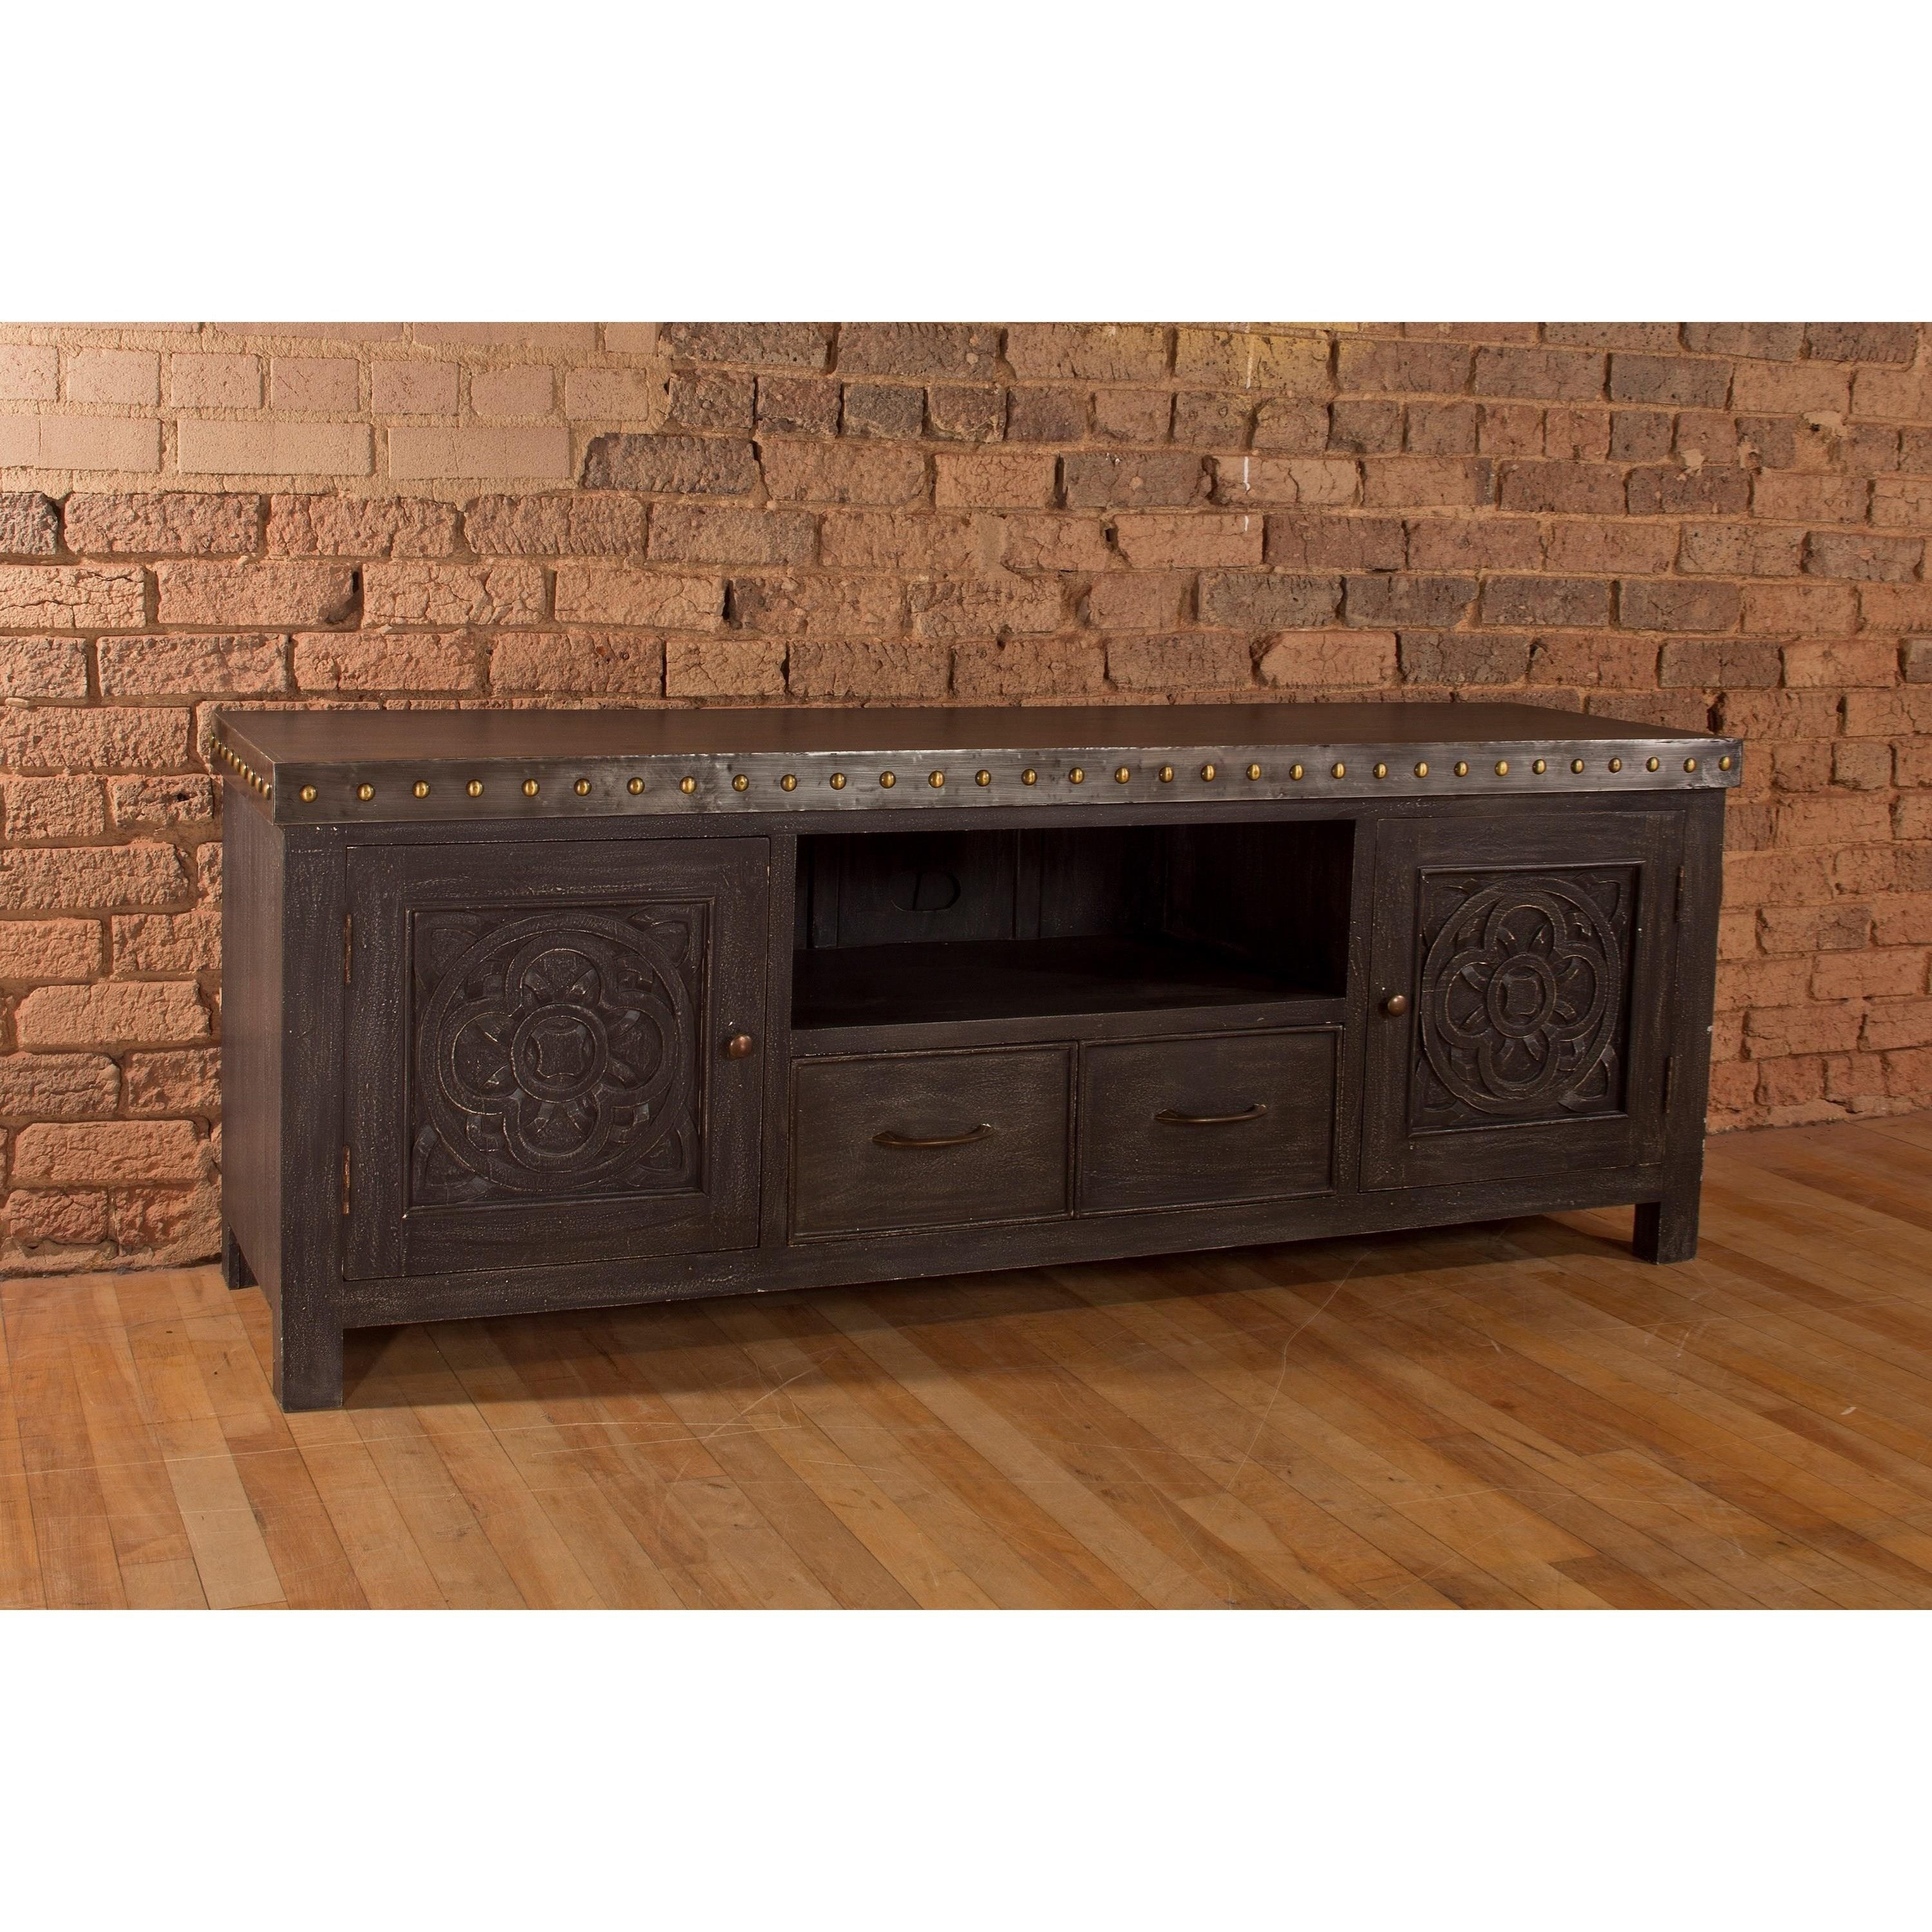 Accents Entertainment Unit by Hillsdale at Gill Brothers Furniture